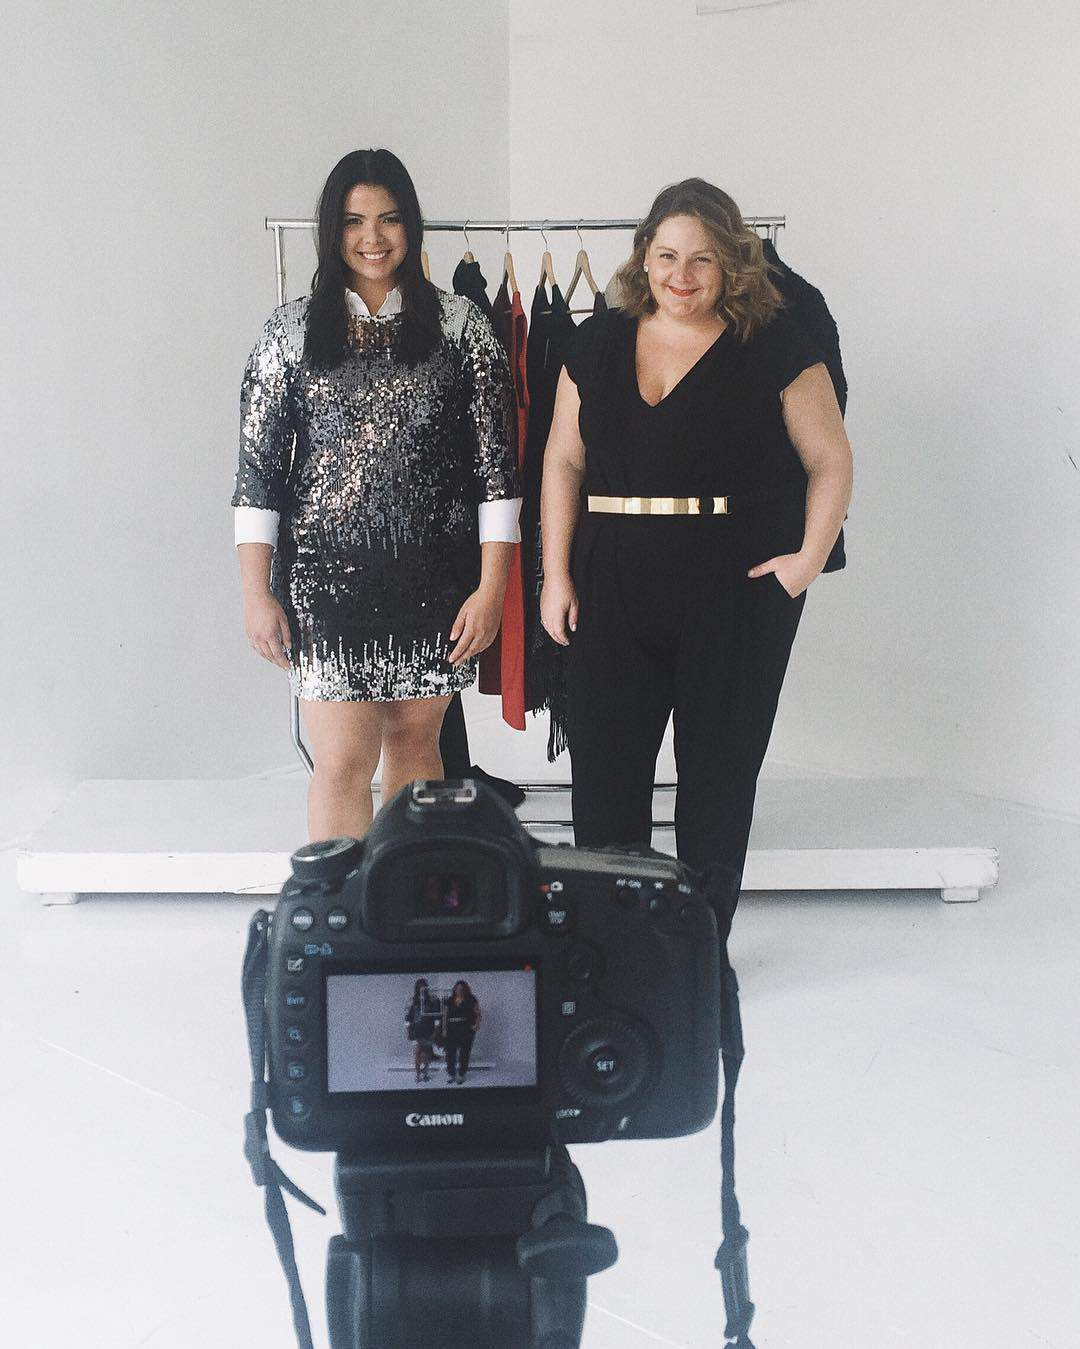 7e2f6ce435a6 Plvsh the personal styling for plus size women plus size woman jpg  1080x1349 Styling for plus